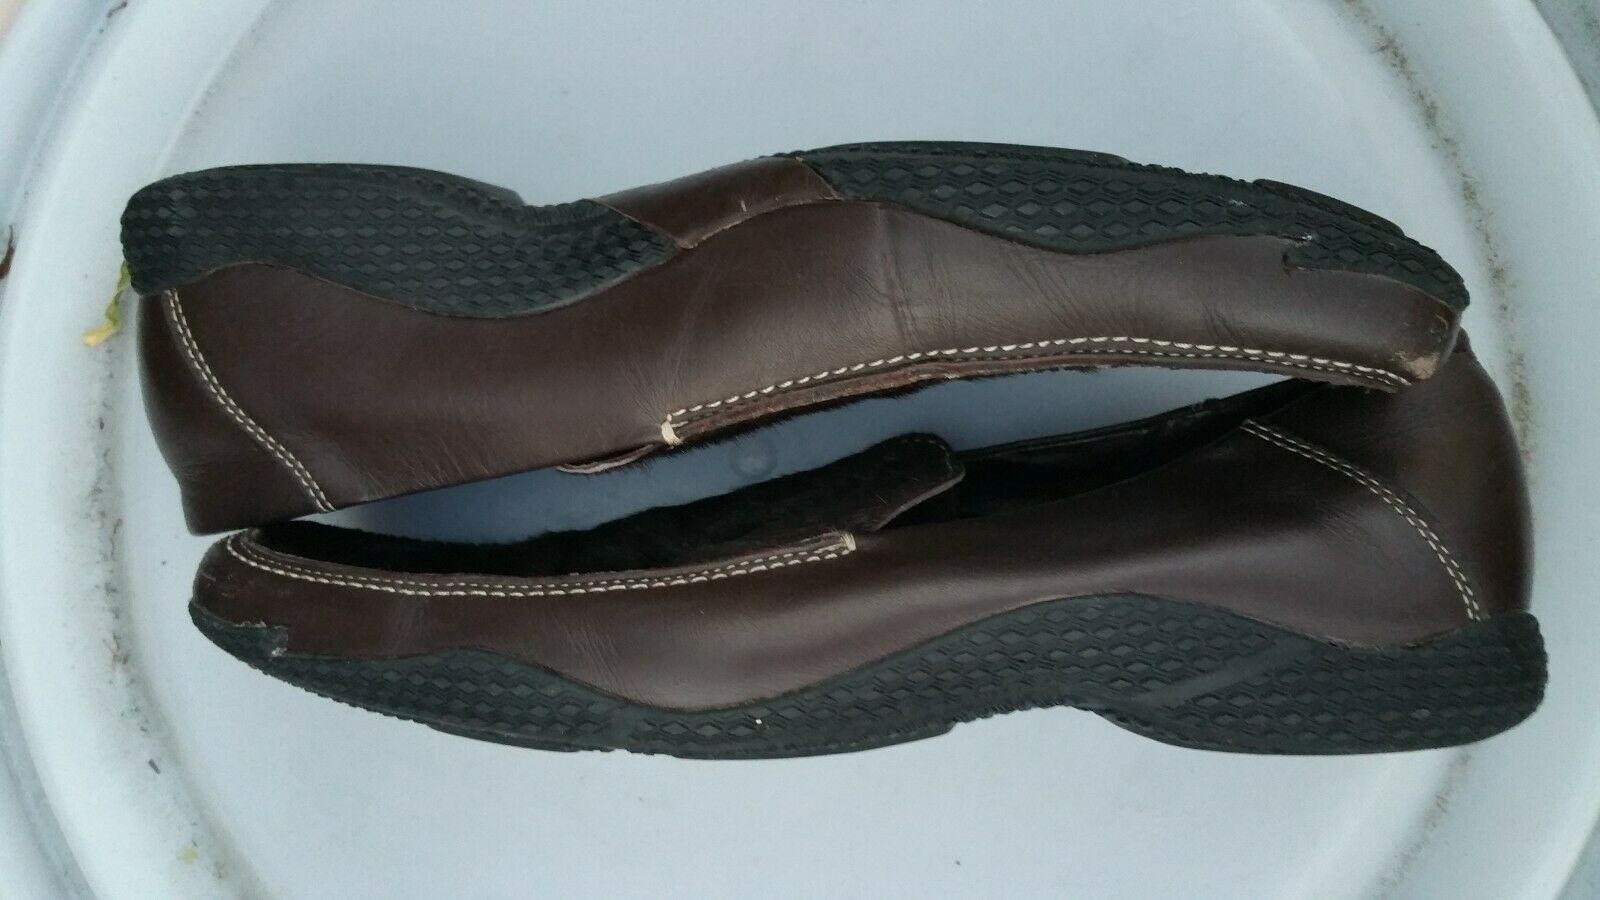 Kenneth Cole Reaction brown dress shoes size 7.5